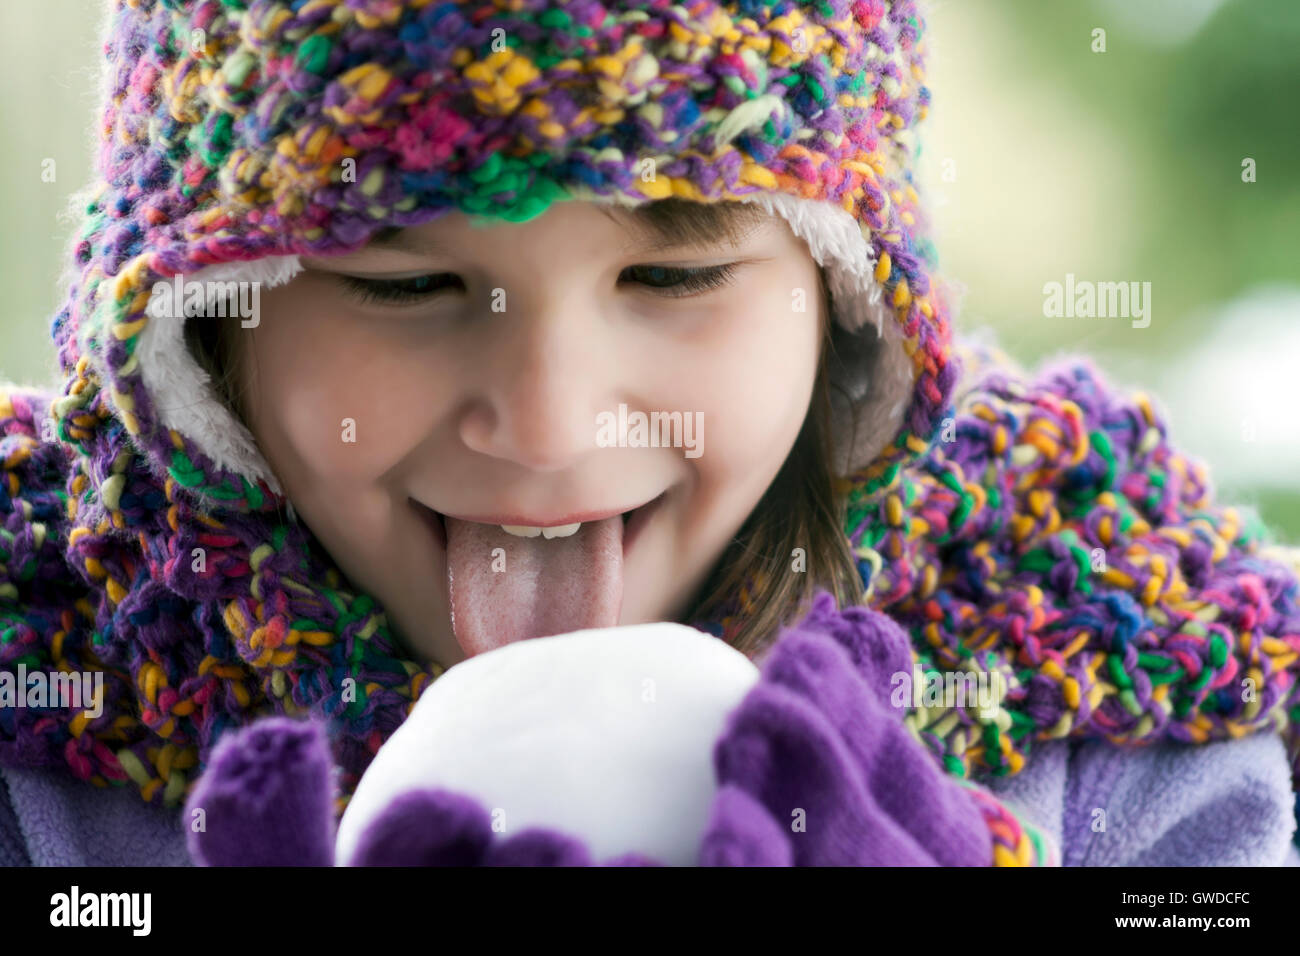 Young girl licking a snowball. - Stock Image